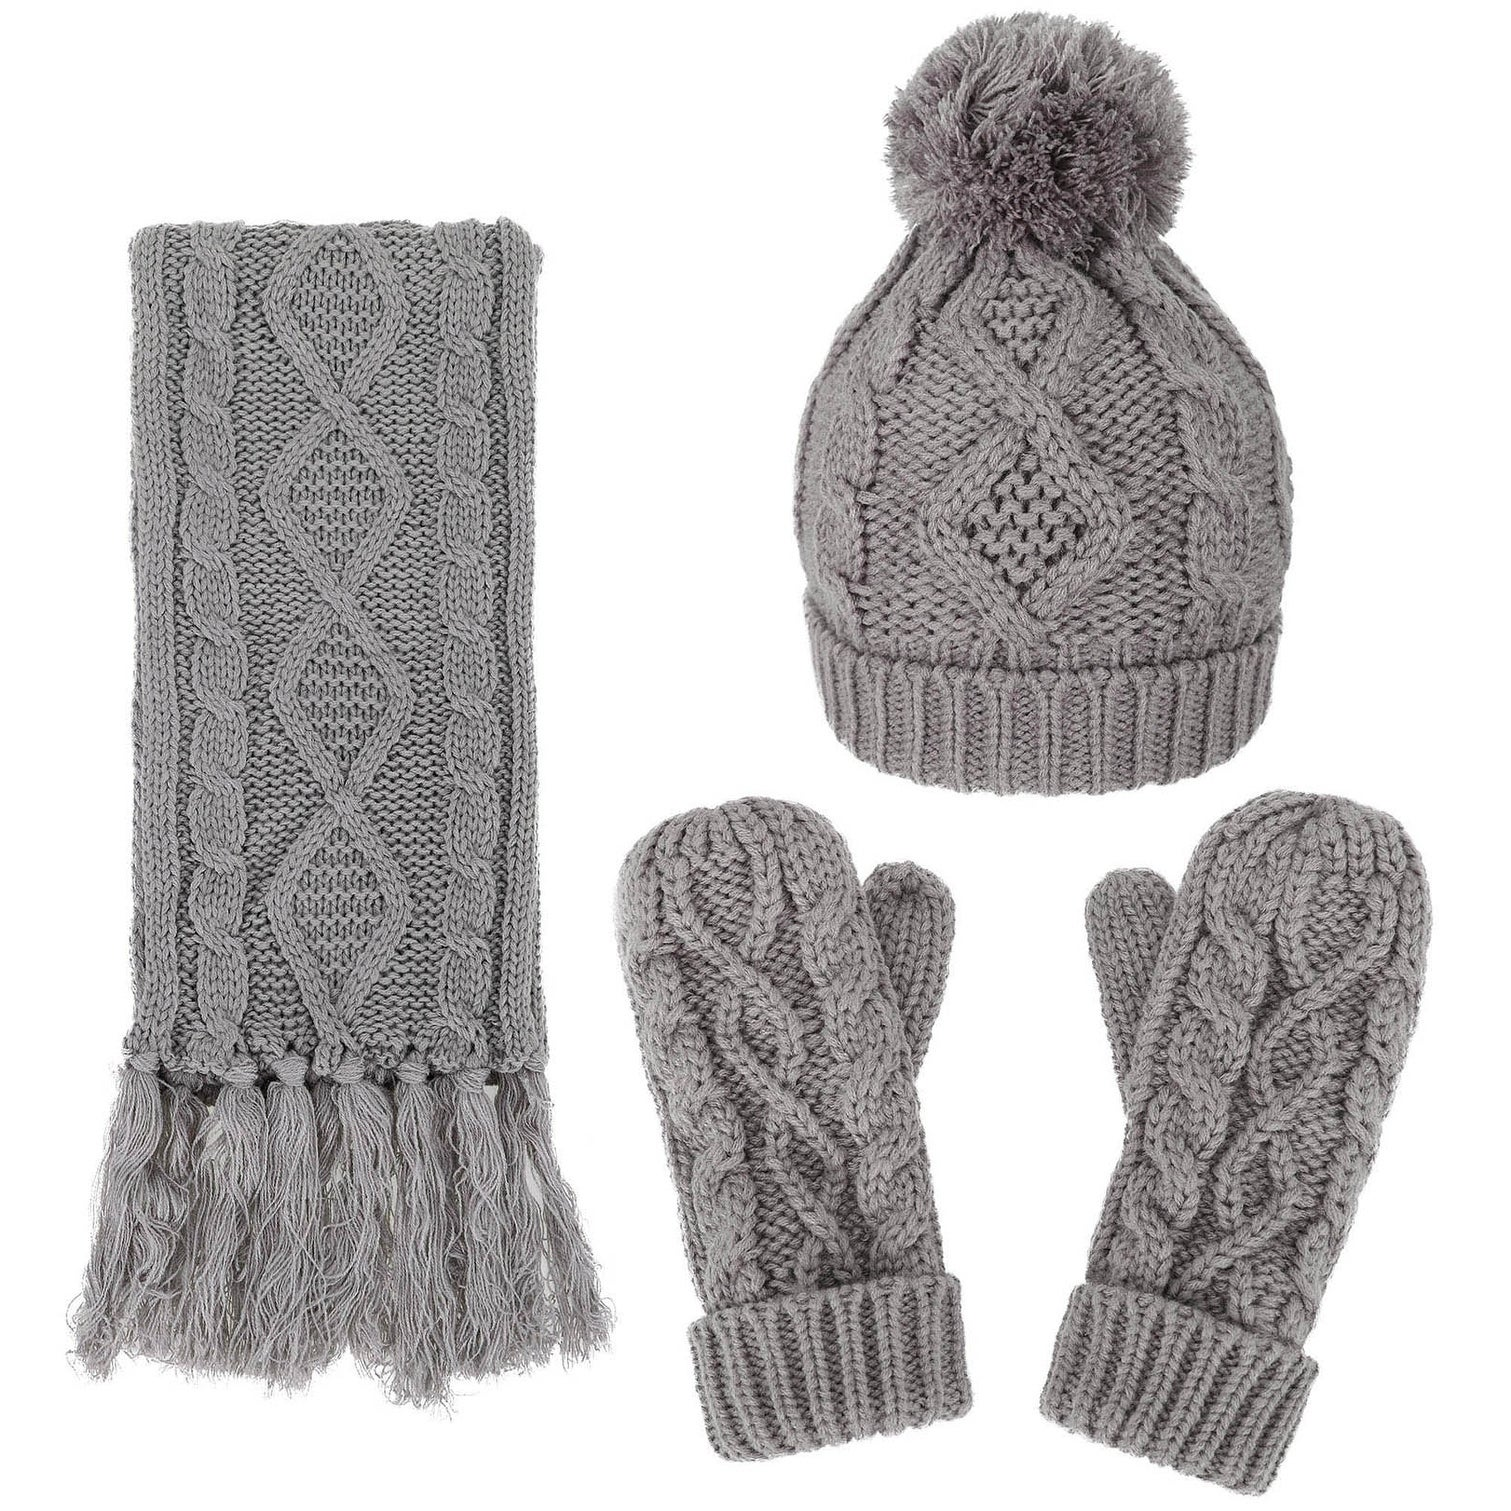 Twice Andorra Women's Cable Knit Winter Hat, Scarf, & Glo...